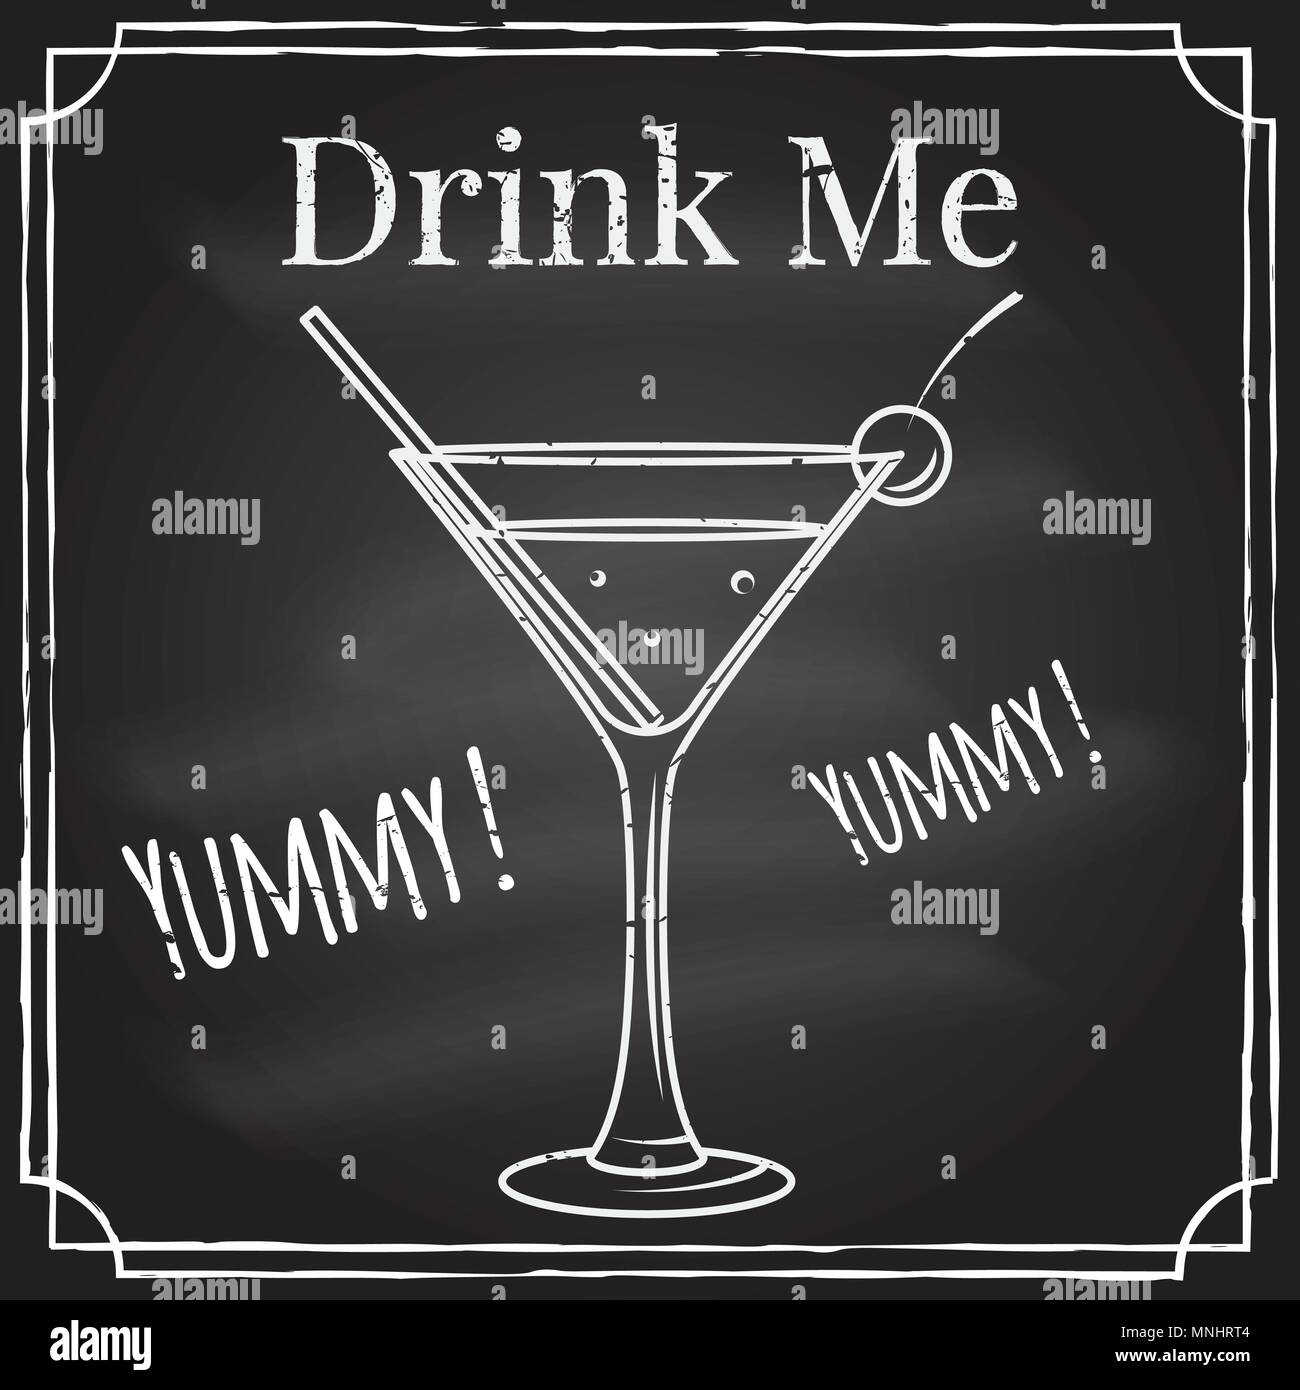 Drink me. Elements on the theme of the restaurant business. Chalk drawing on a blackboard. For cafe or cocktail bar. Cocktail emblem. Thin line icon - Stock Vector